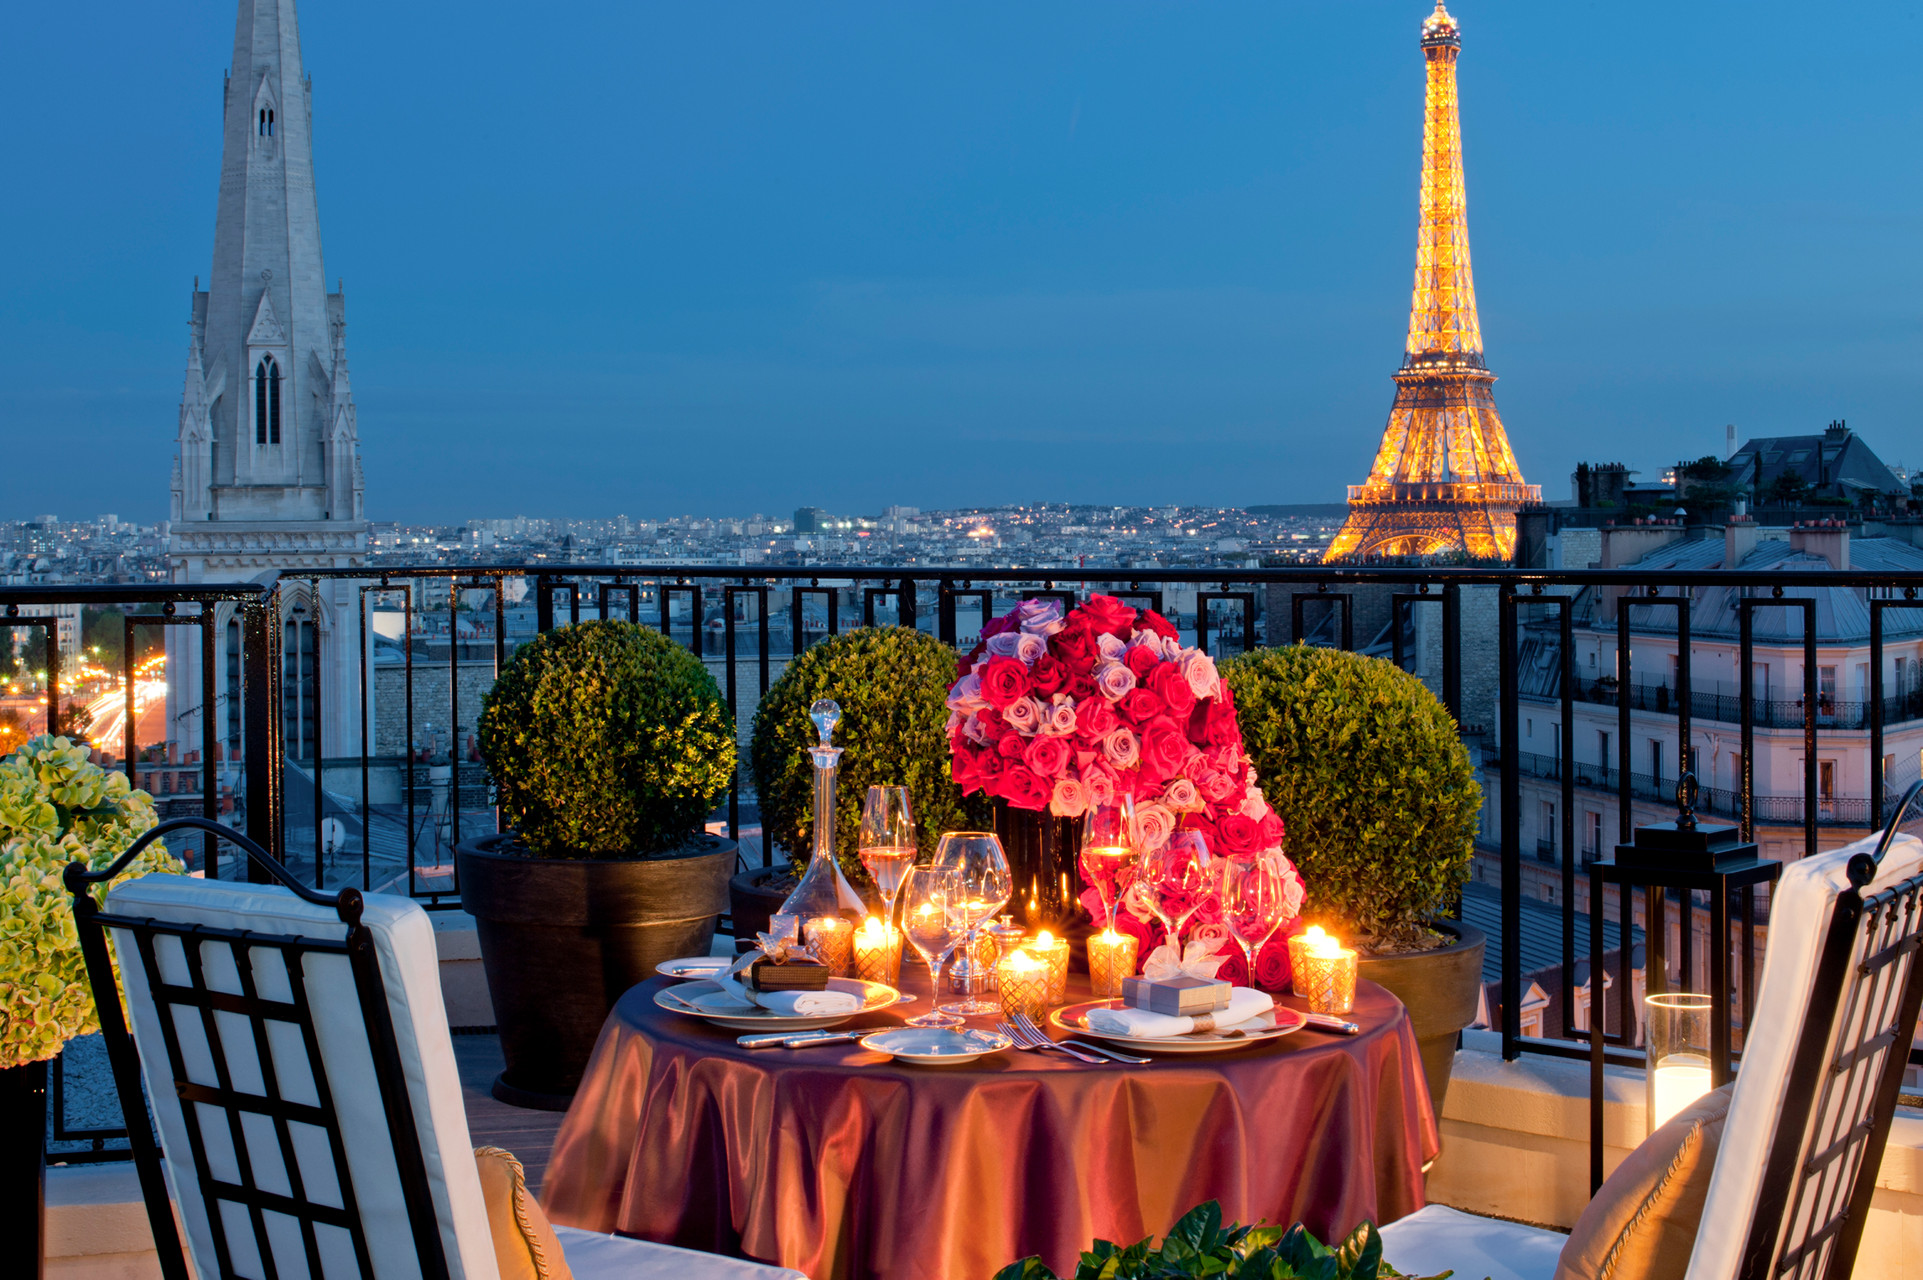 Luxury Travel: 5 Reasons Why Paris Should Be Your Next Destination travel destinations 5 Luxury Travel Destinations That Are Trending This Year luxury travel reasons why paris next destination valentines day travel destinations 5 Luxury Travel Destinations That Are Trending This Year luxury travel reasons why paris next destination valentines day